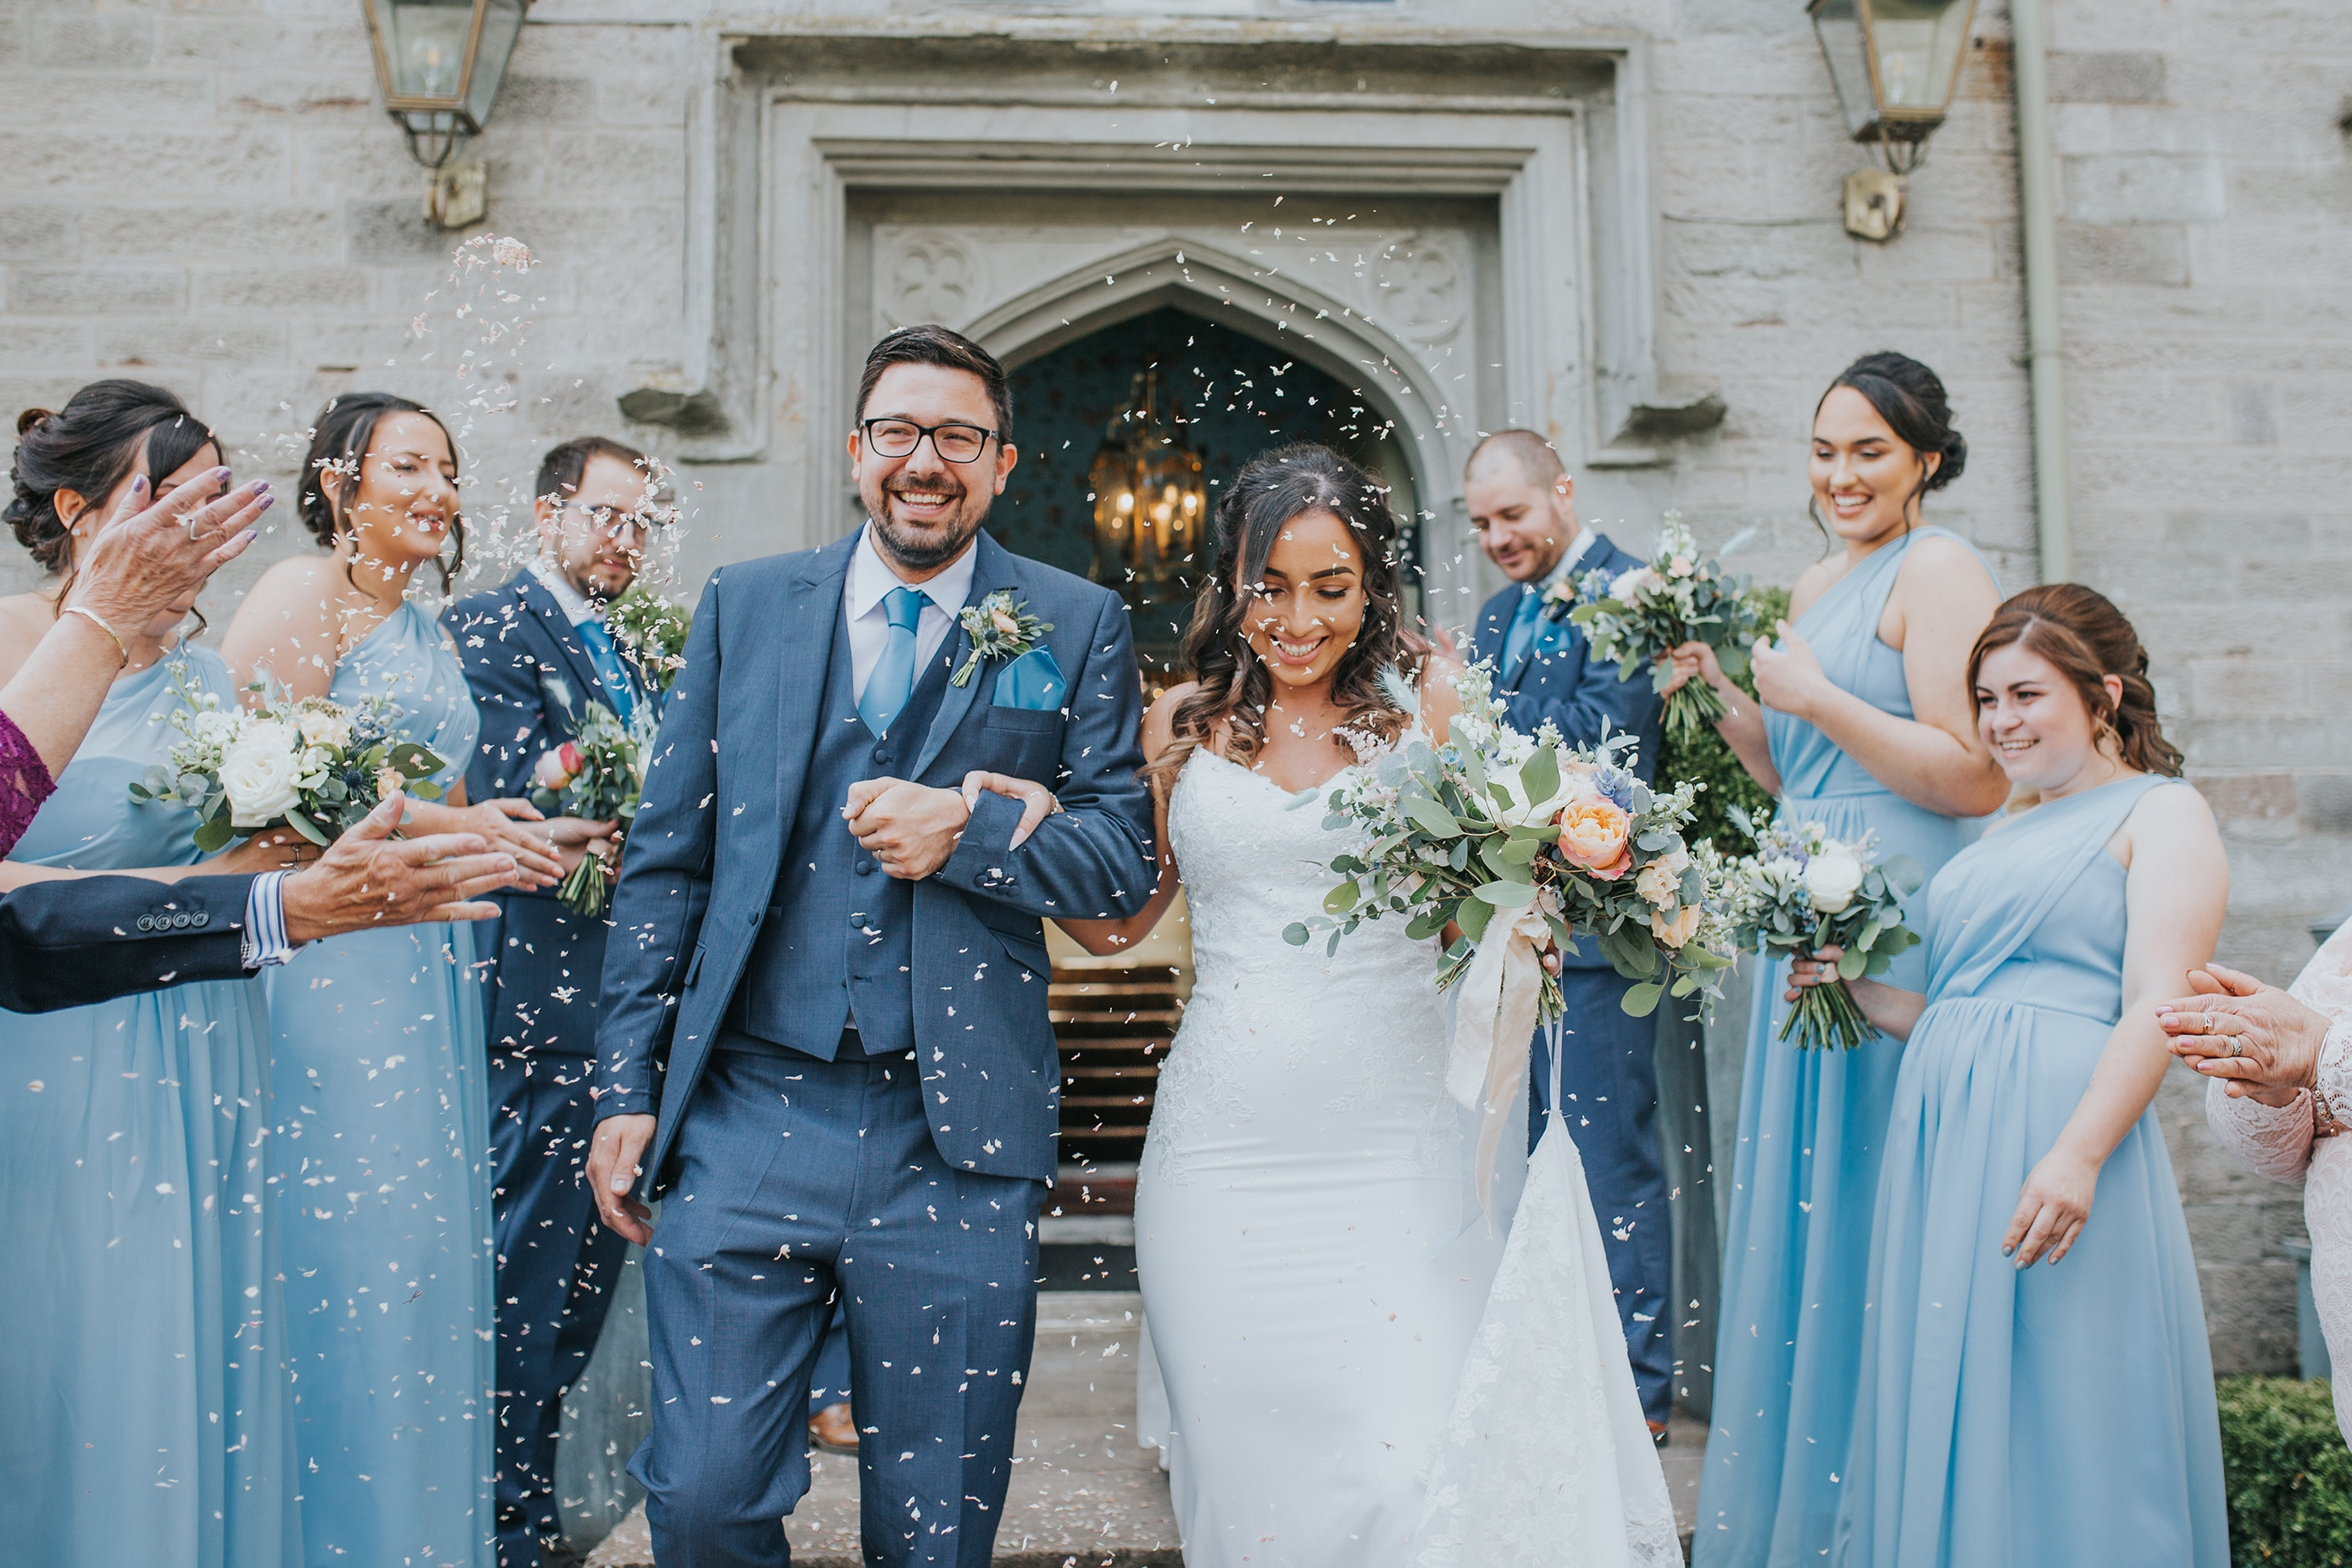 Confetti Wedding Photo taken at a Lemore Manor Wedding in Hereford